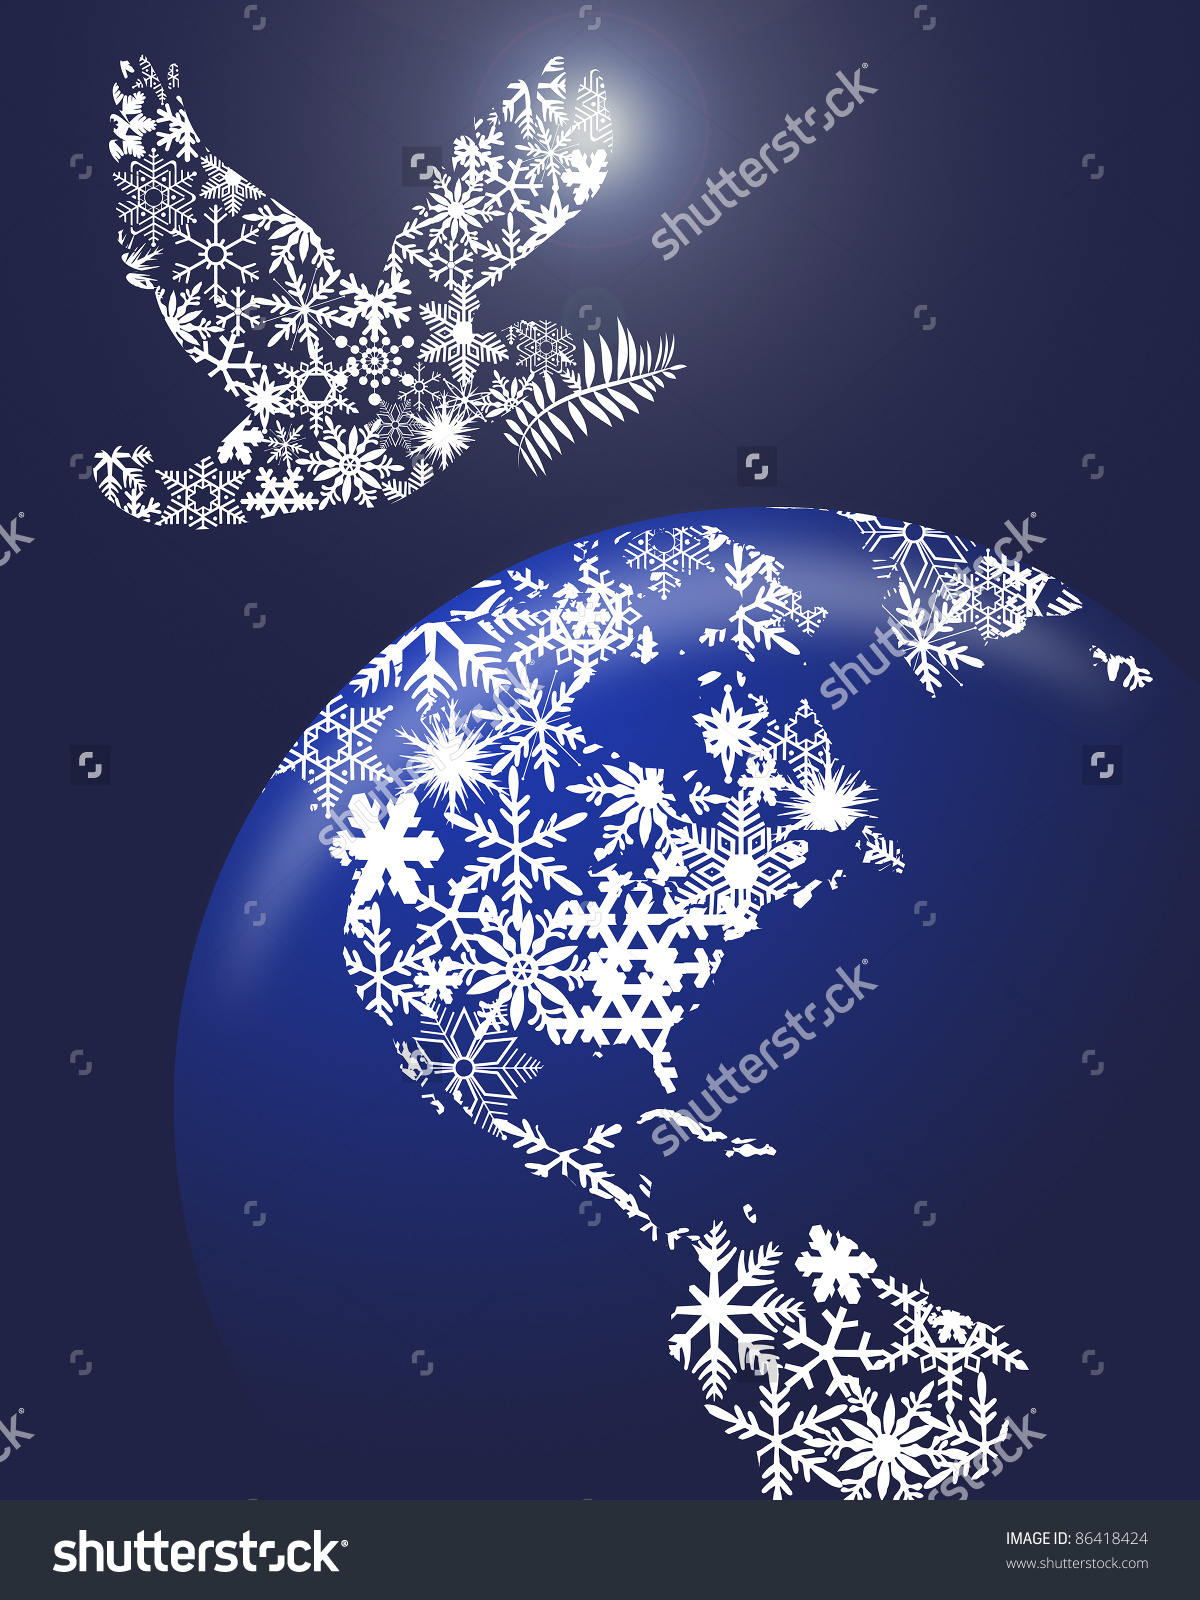 Christmas Peace Dove Earth Globe Clipart Stock Illustration.